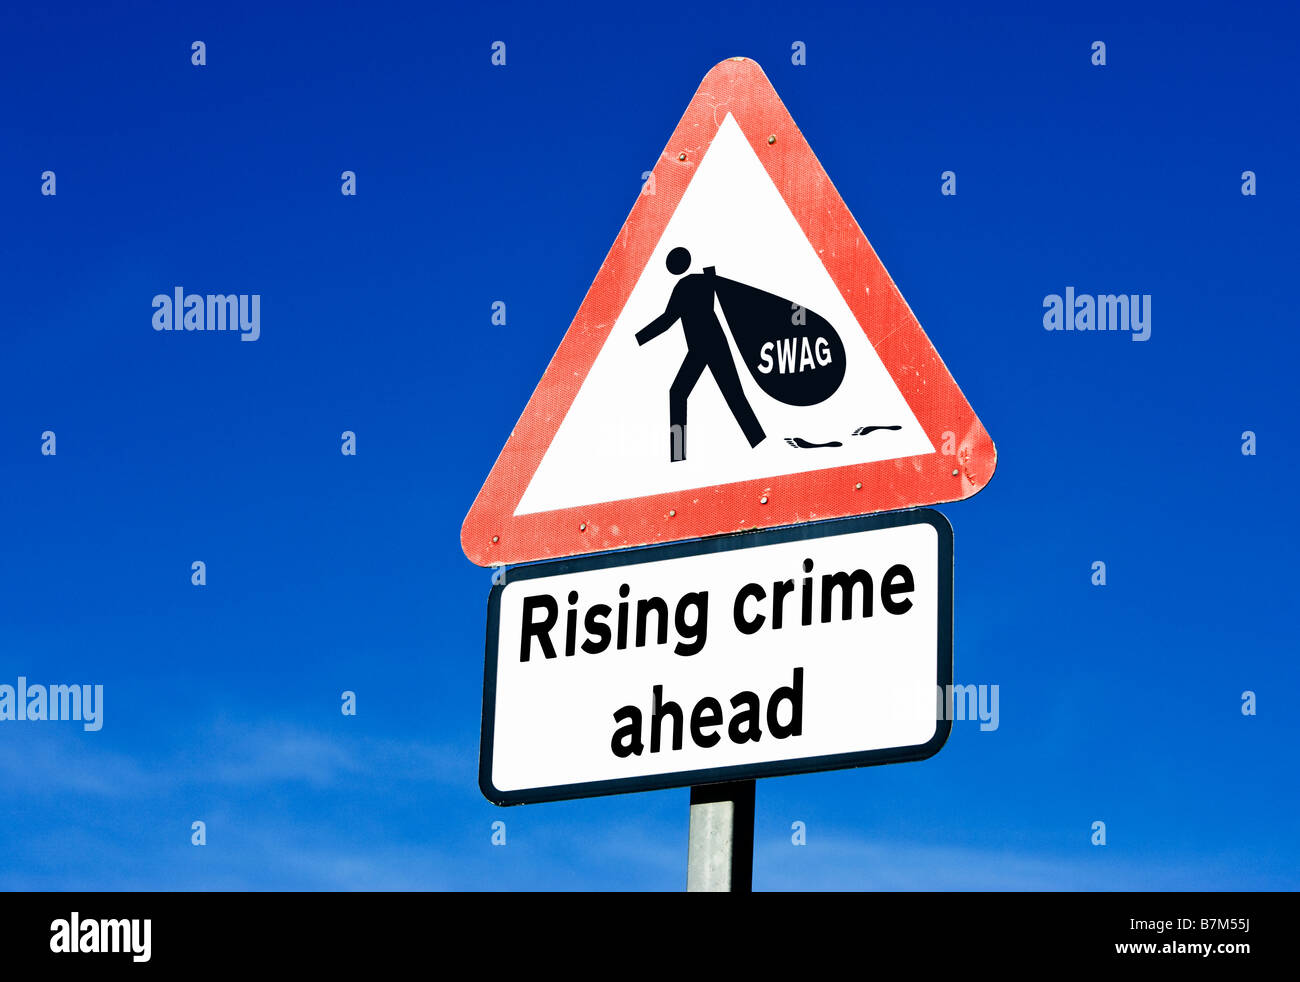 Rising crime ahead UK against a blue sky - Stock Image